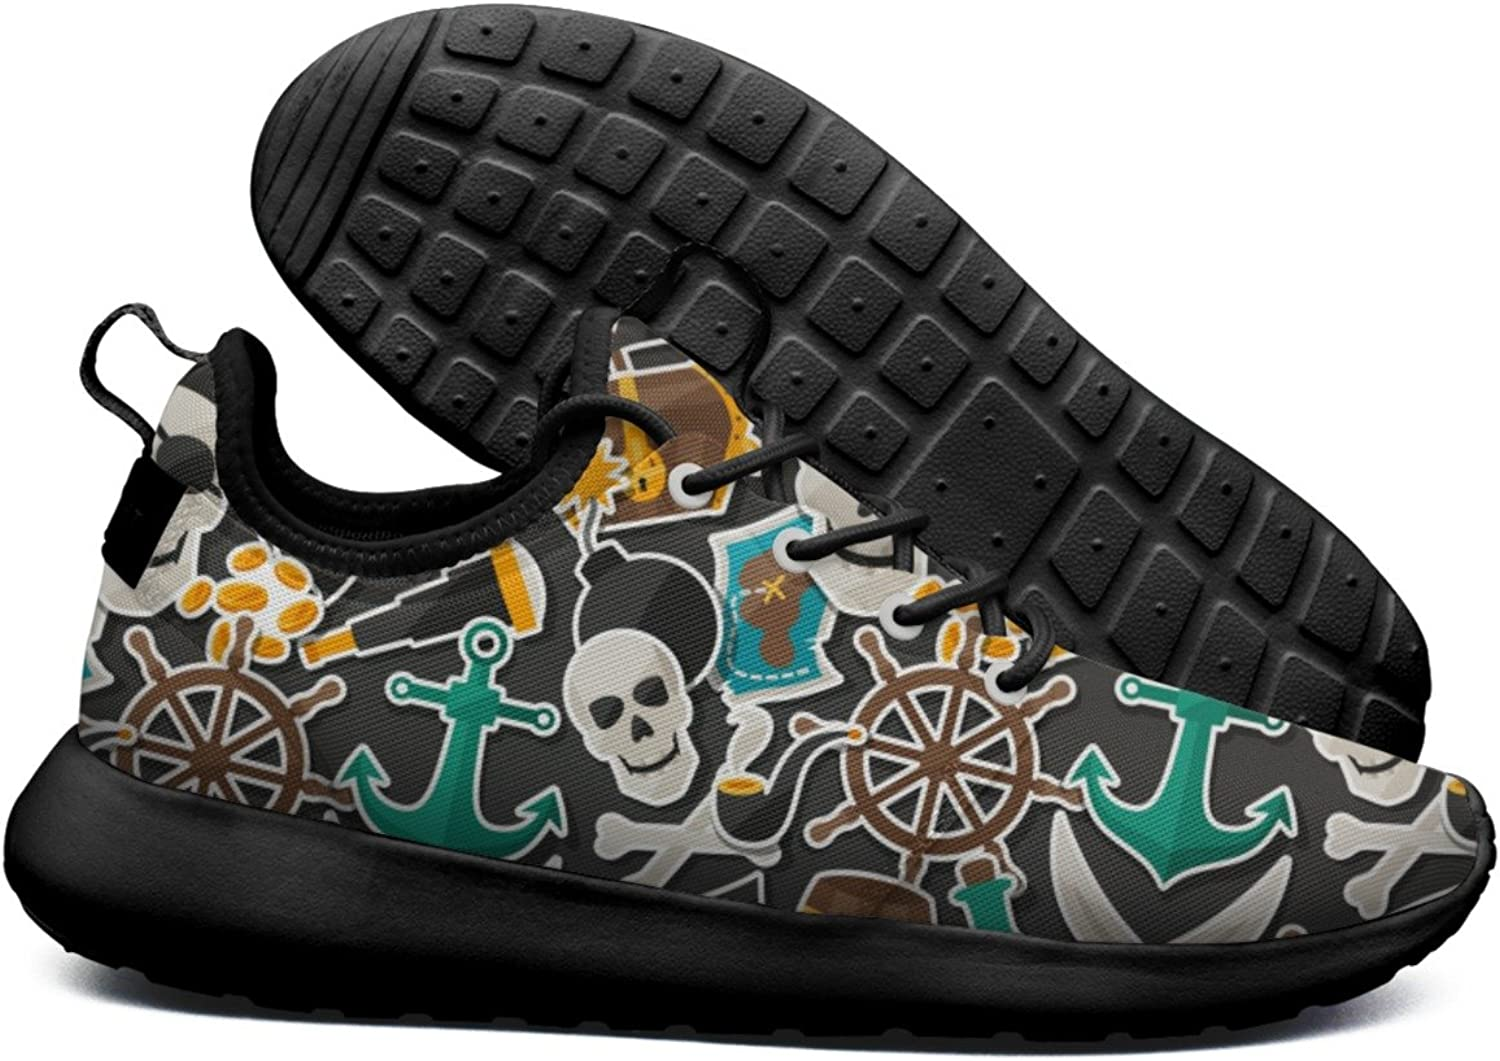 ERSER Pirate Theme Skull Anchor Minimalist Running shoes Women Road